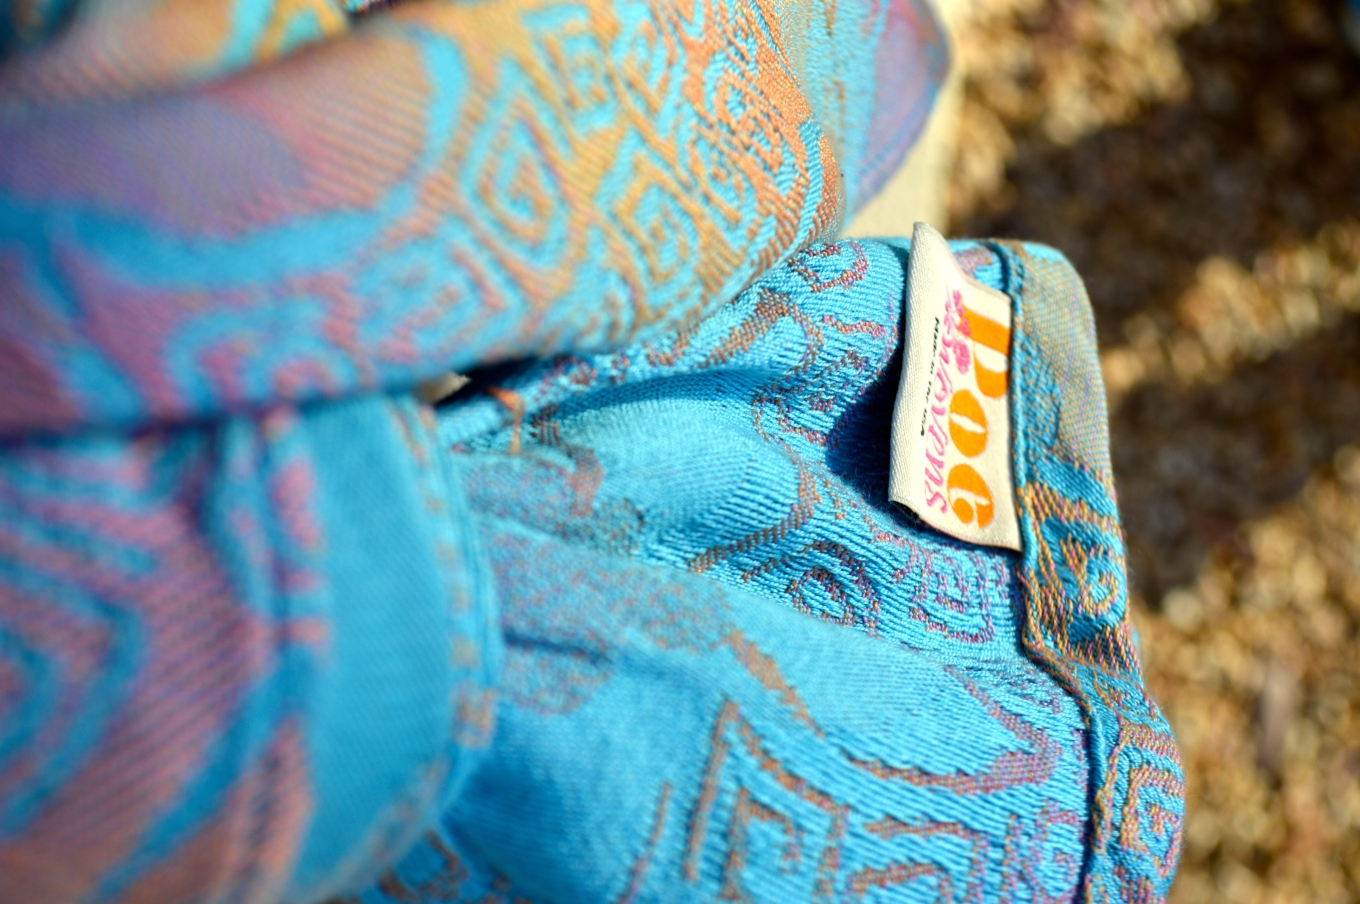 Image shows the view looking down from the wearer's point of view of the knot tied to secure the carry. The company label is visible in the foreground and the rocks below are fuzzy in the background. Close up view of gradient color orange to pink Jonquil flowers against a pale blue background. The flowers and geometric circle tendrils are raised from the fabric of the wrap adding texture.